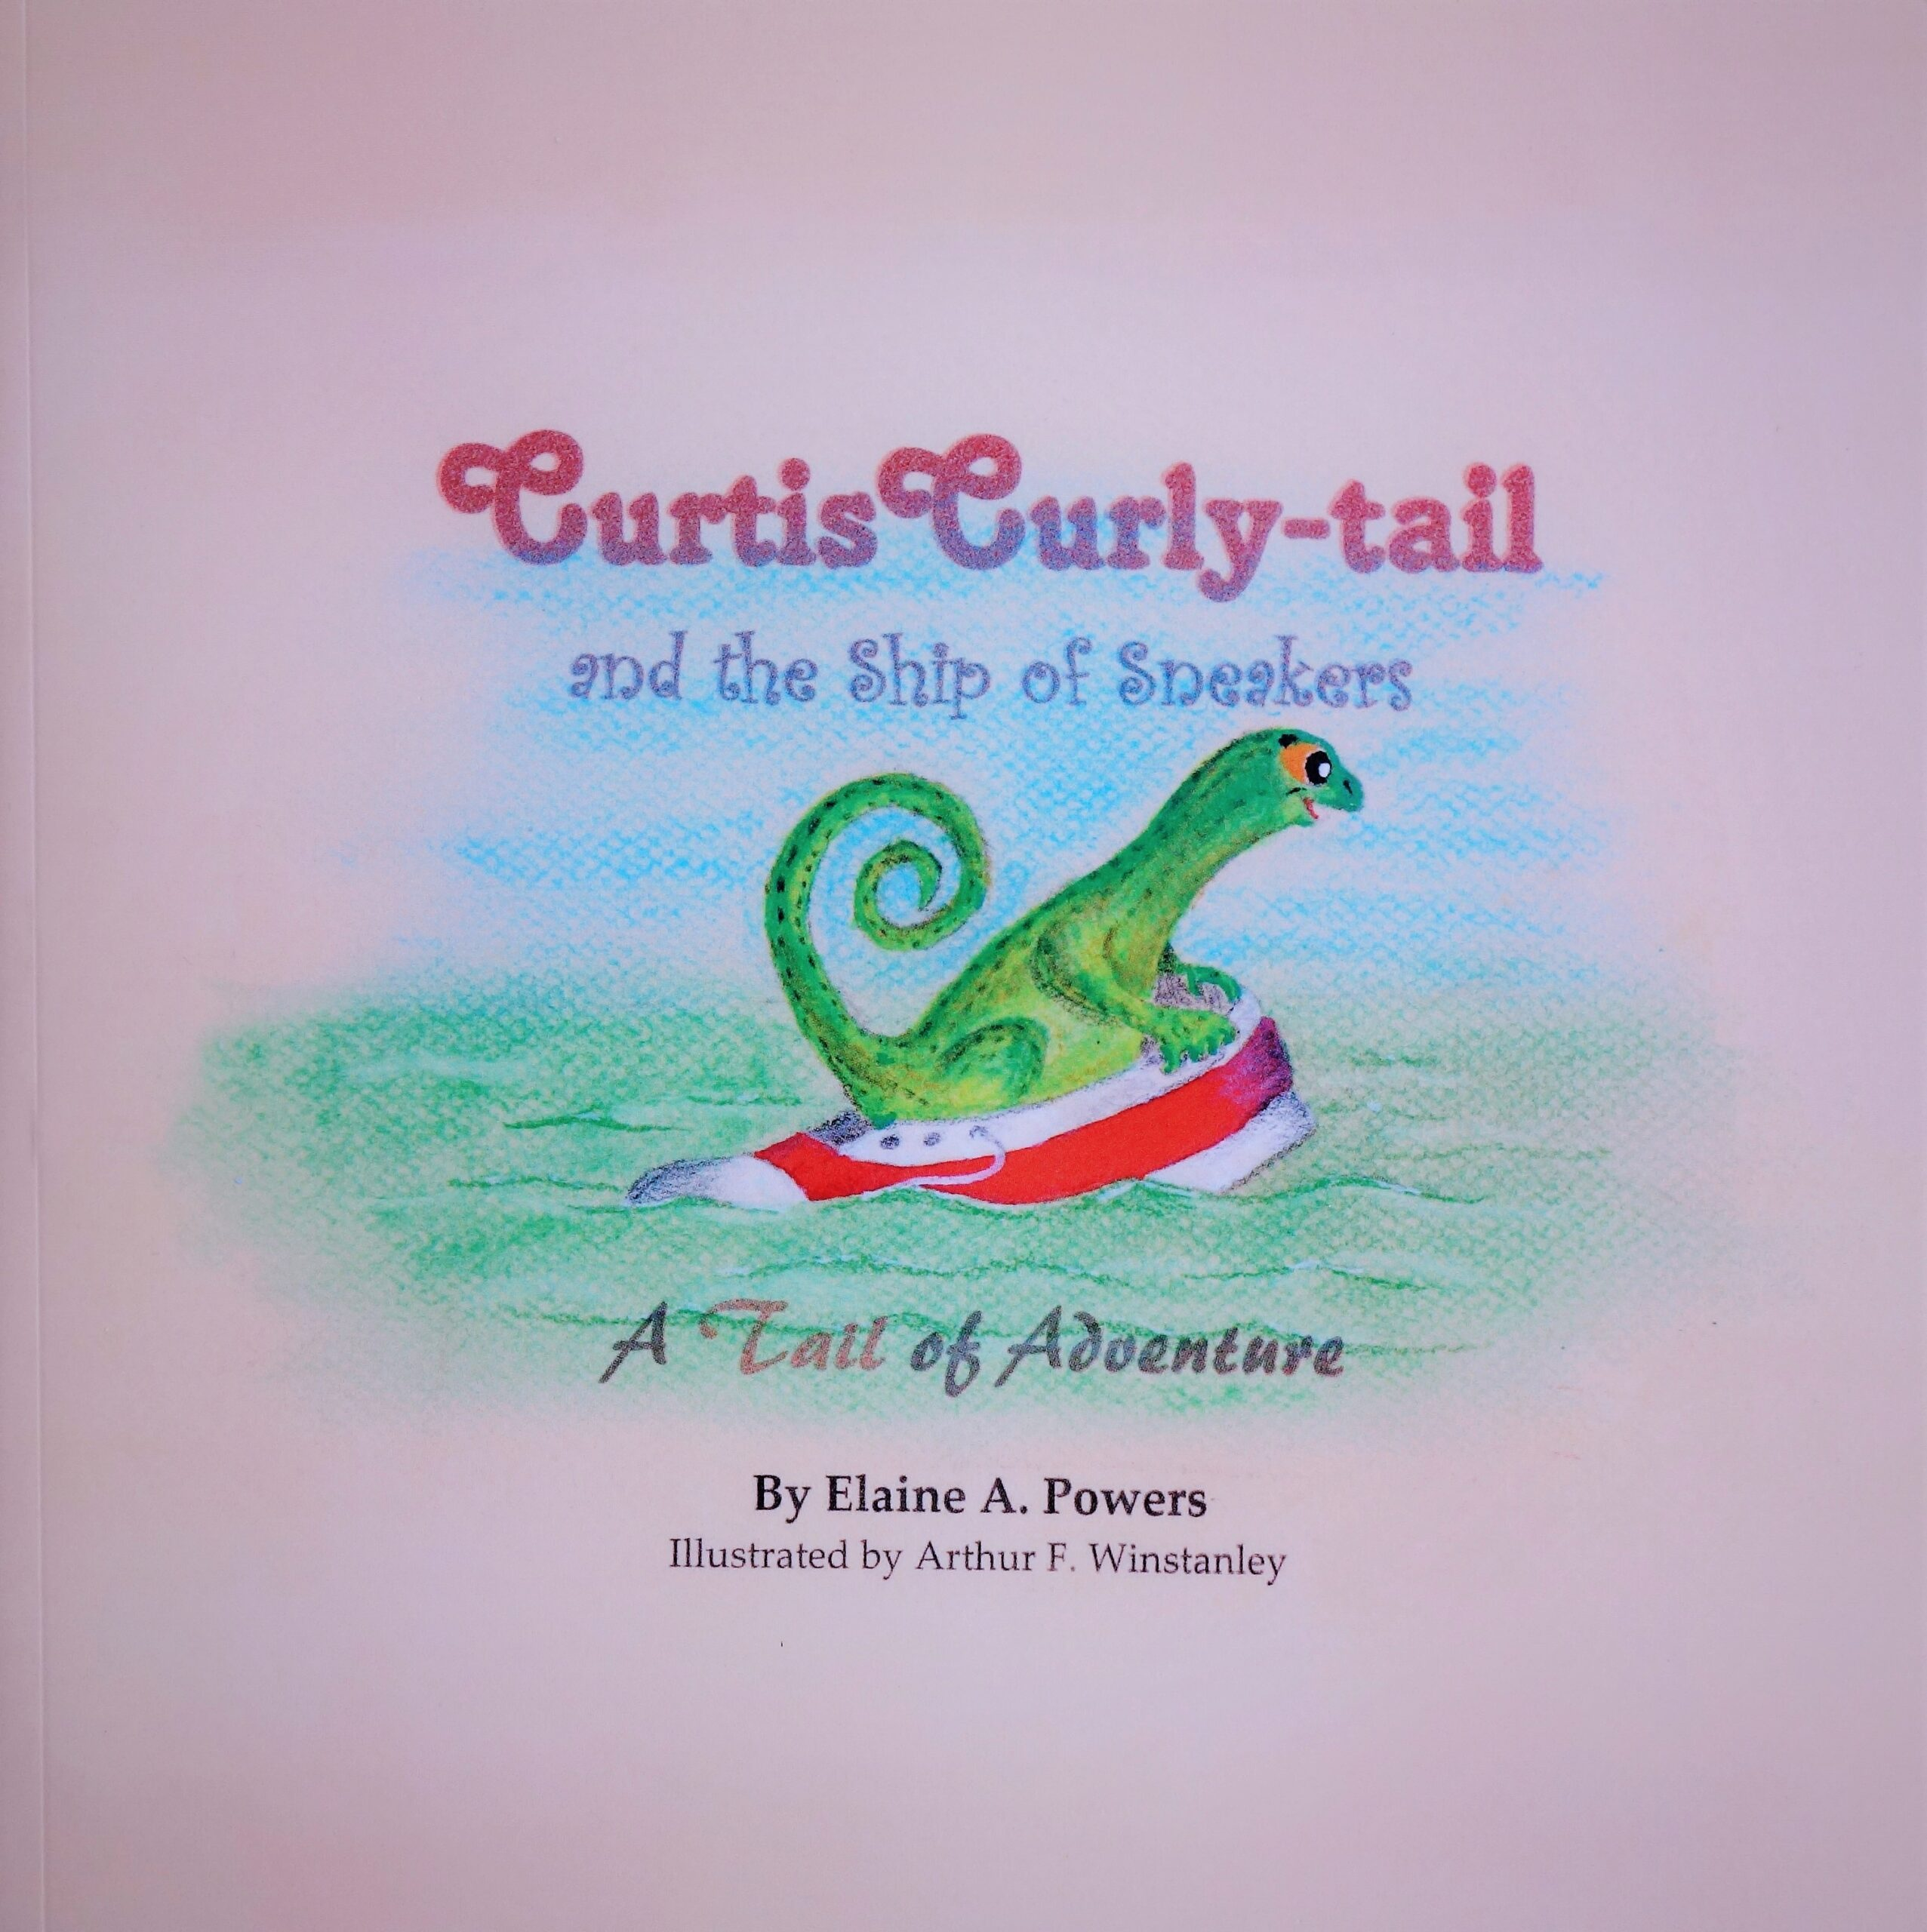 A book cover with a Curly-tail lizard riding the waves in a red sneaker